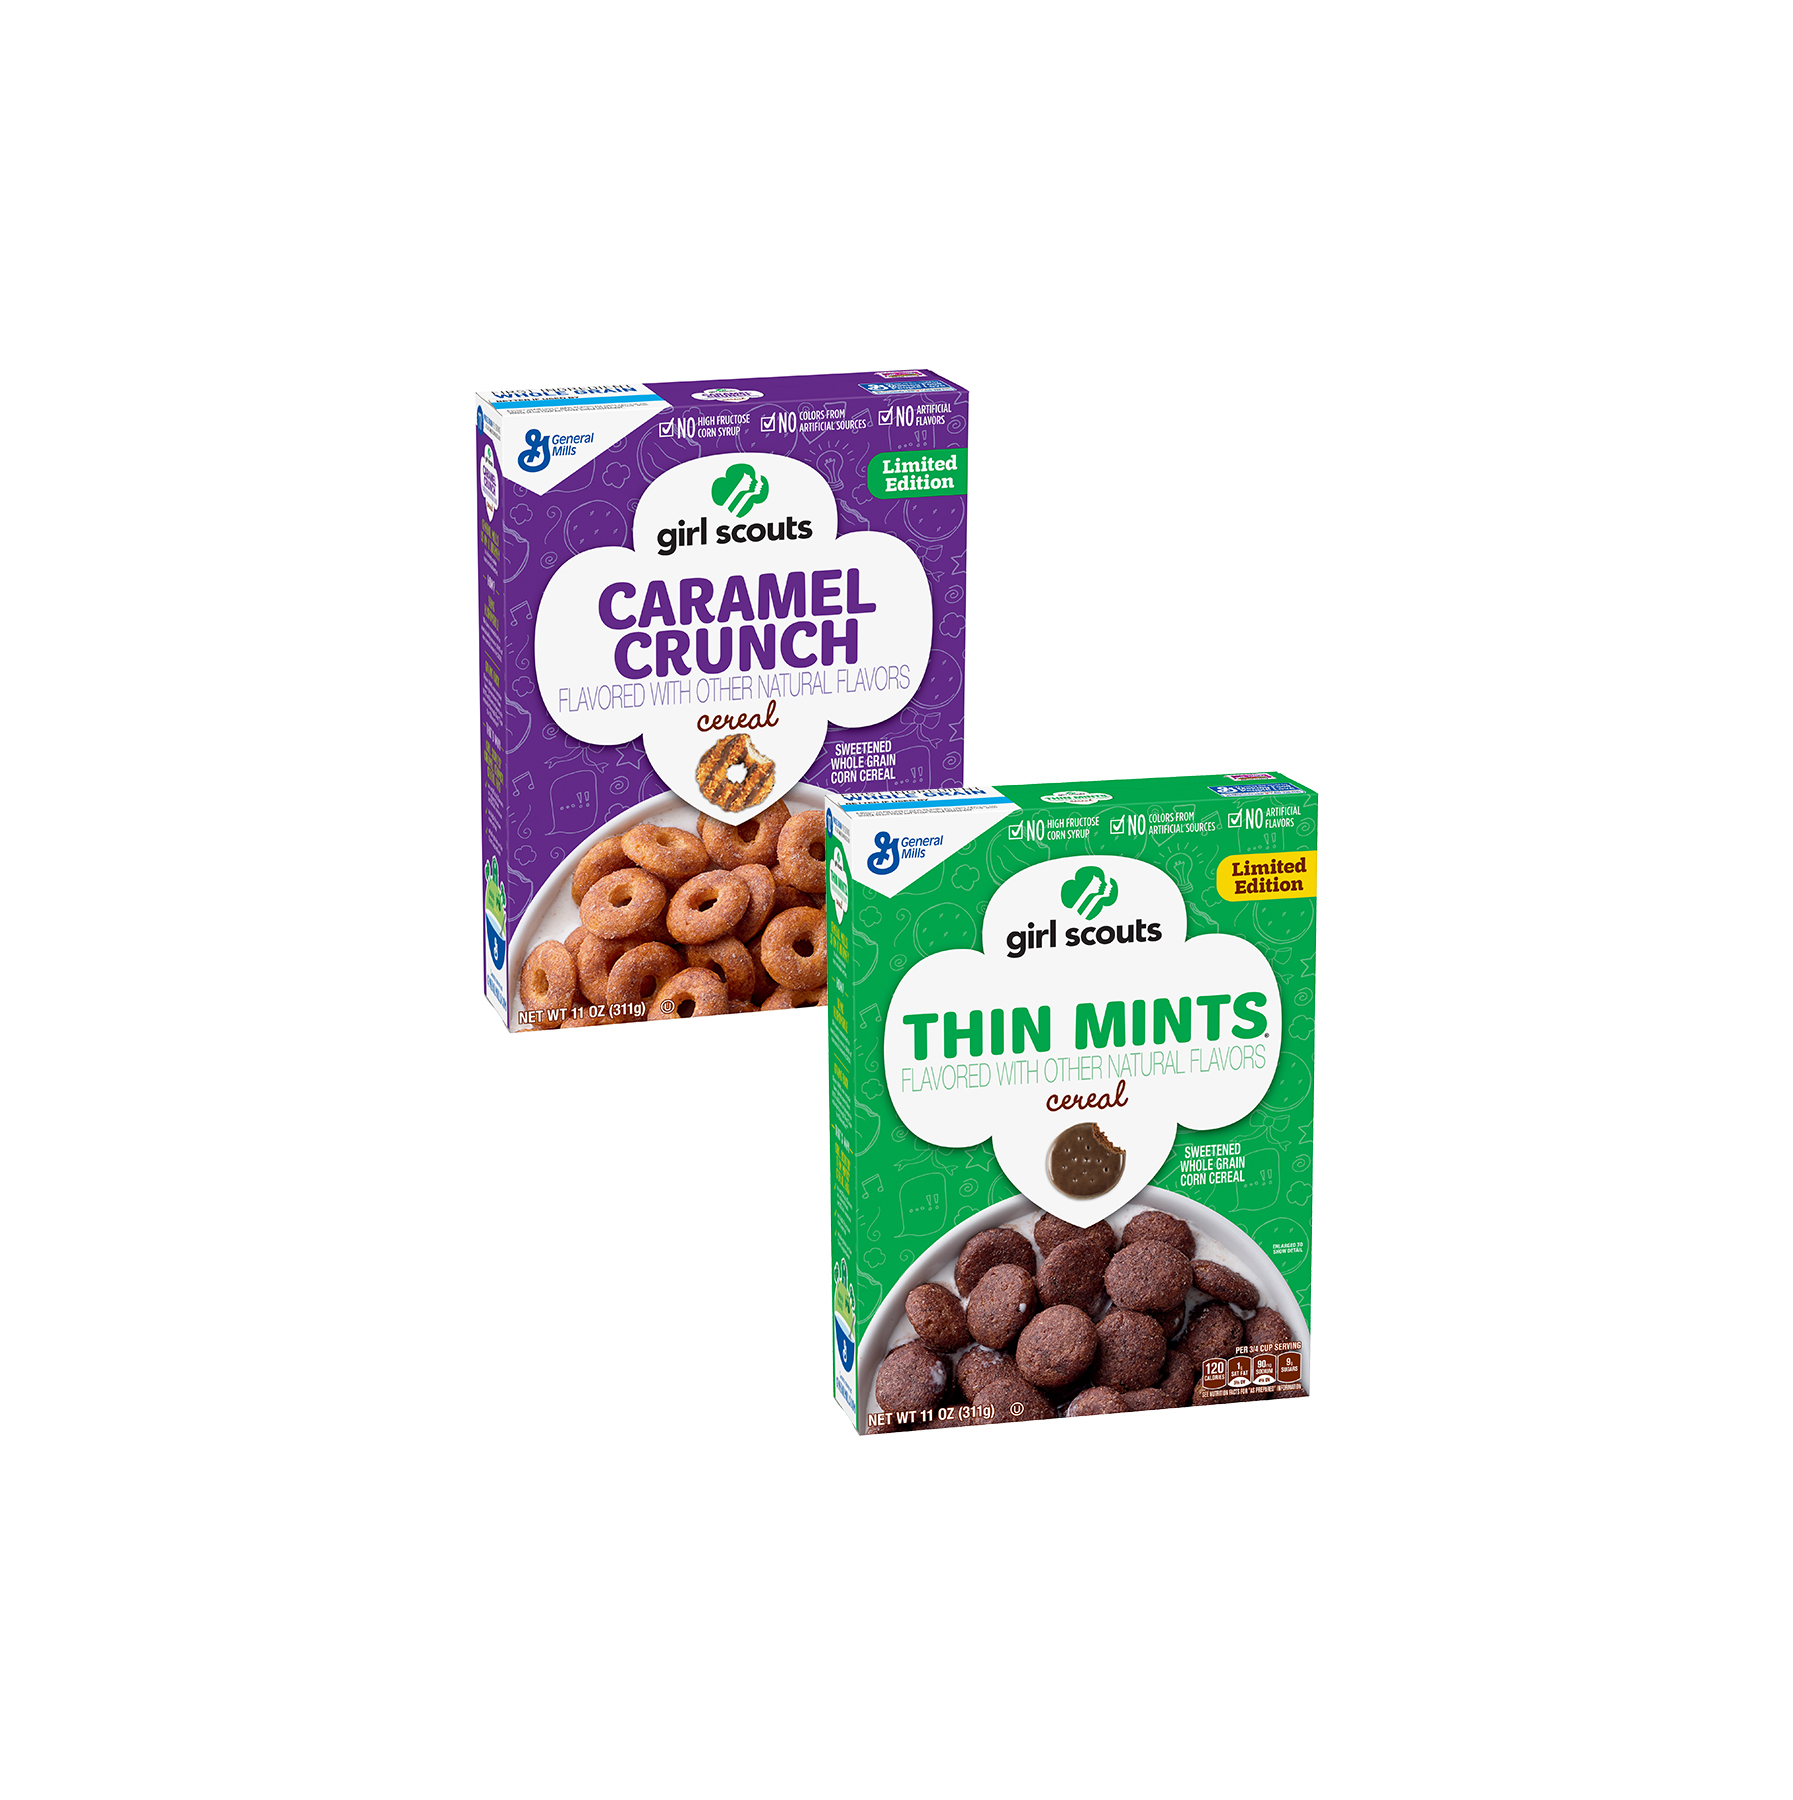 Girl Scout Cookie Cereal Is Coming in January